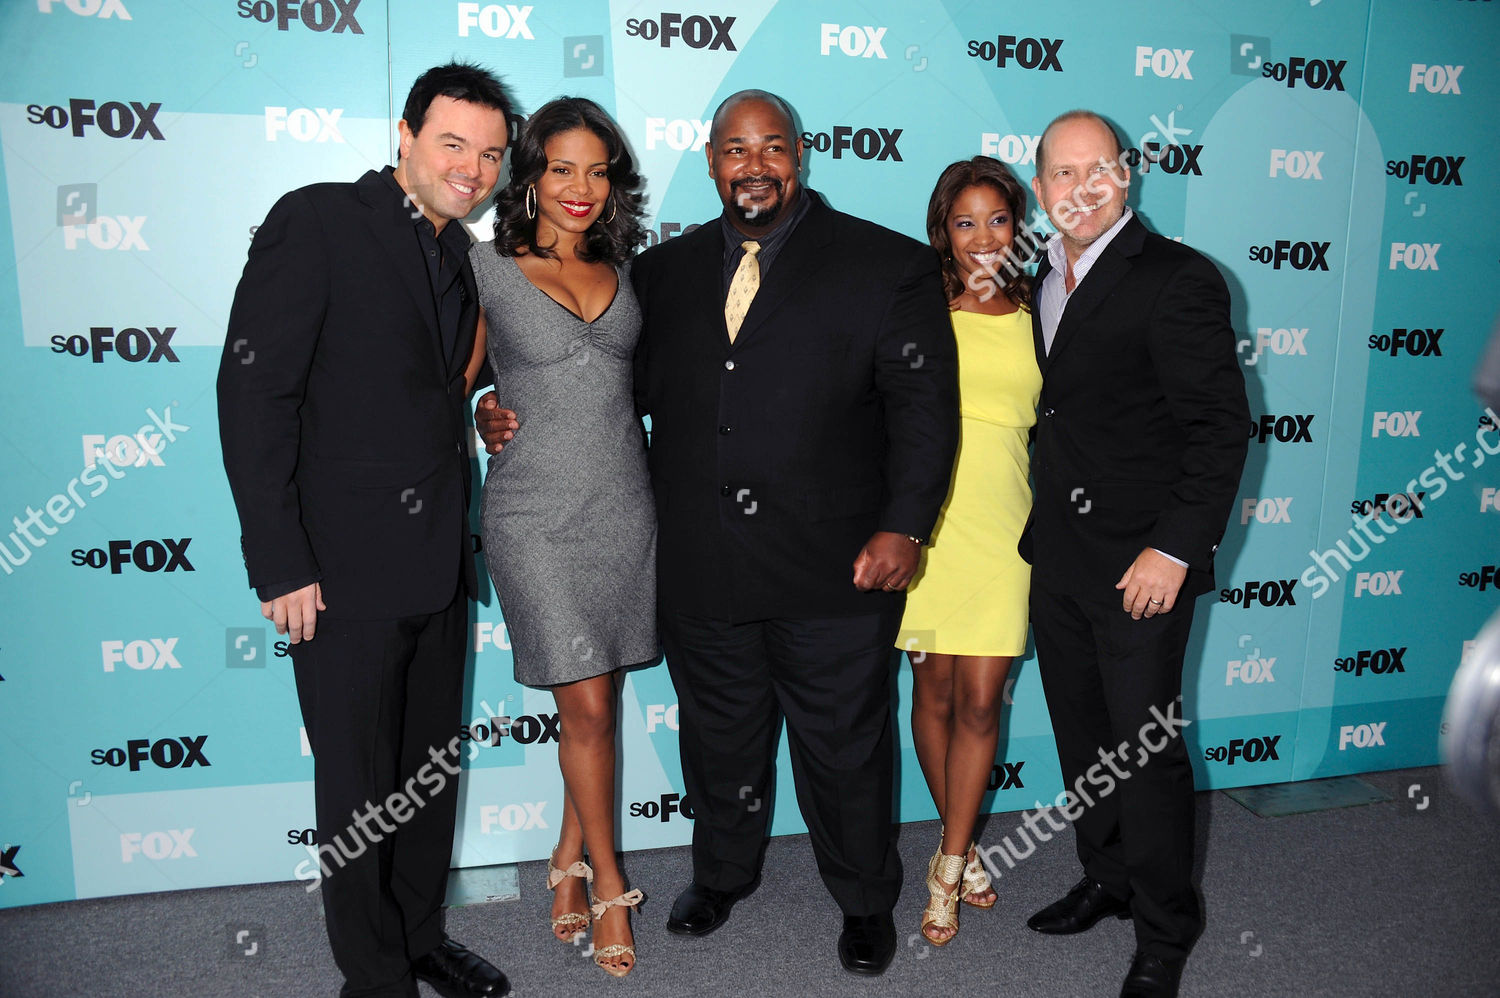 Stock photo of 2009 Fox Networks Upfront Presentation in New York, America - 18 May 2009